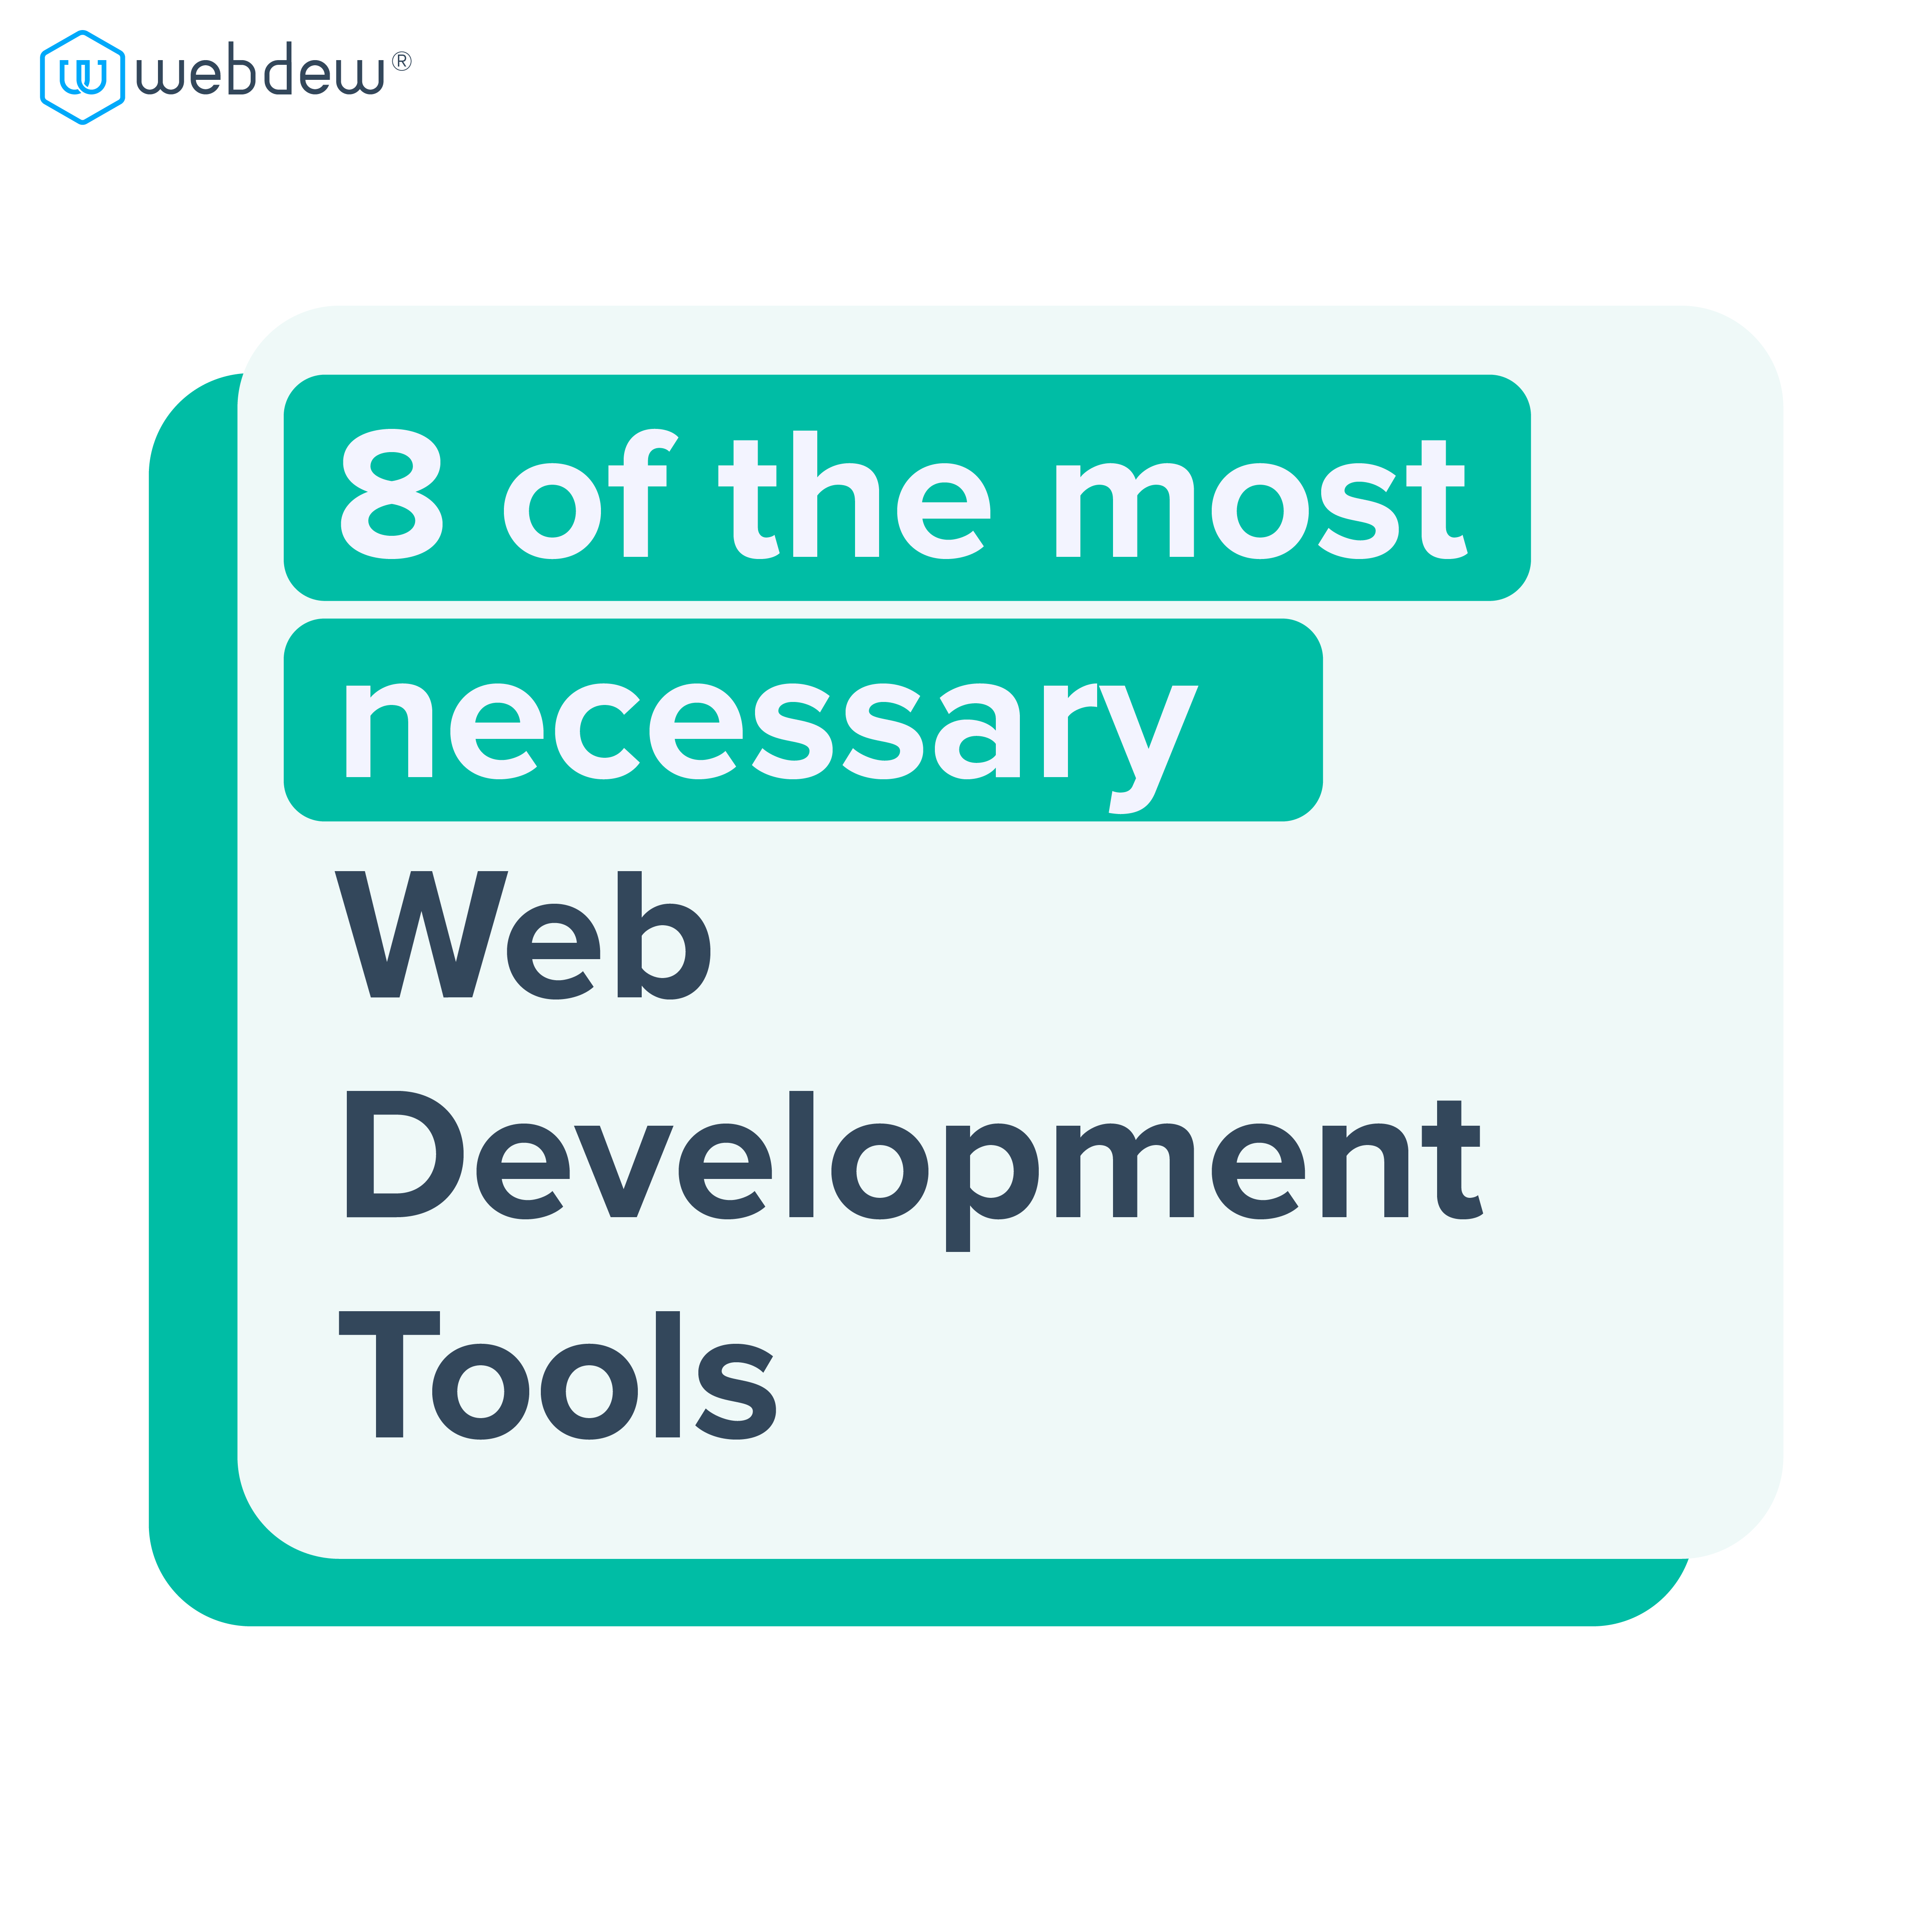 8-of-the-most-necessary-web-development-tools-you-need-in-2021